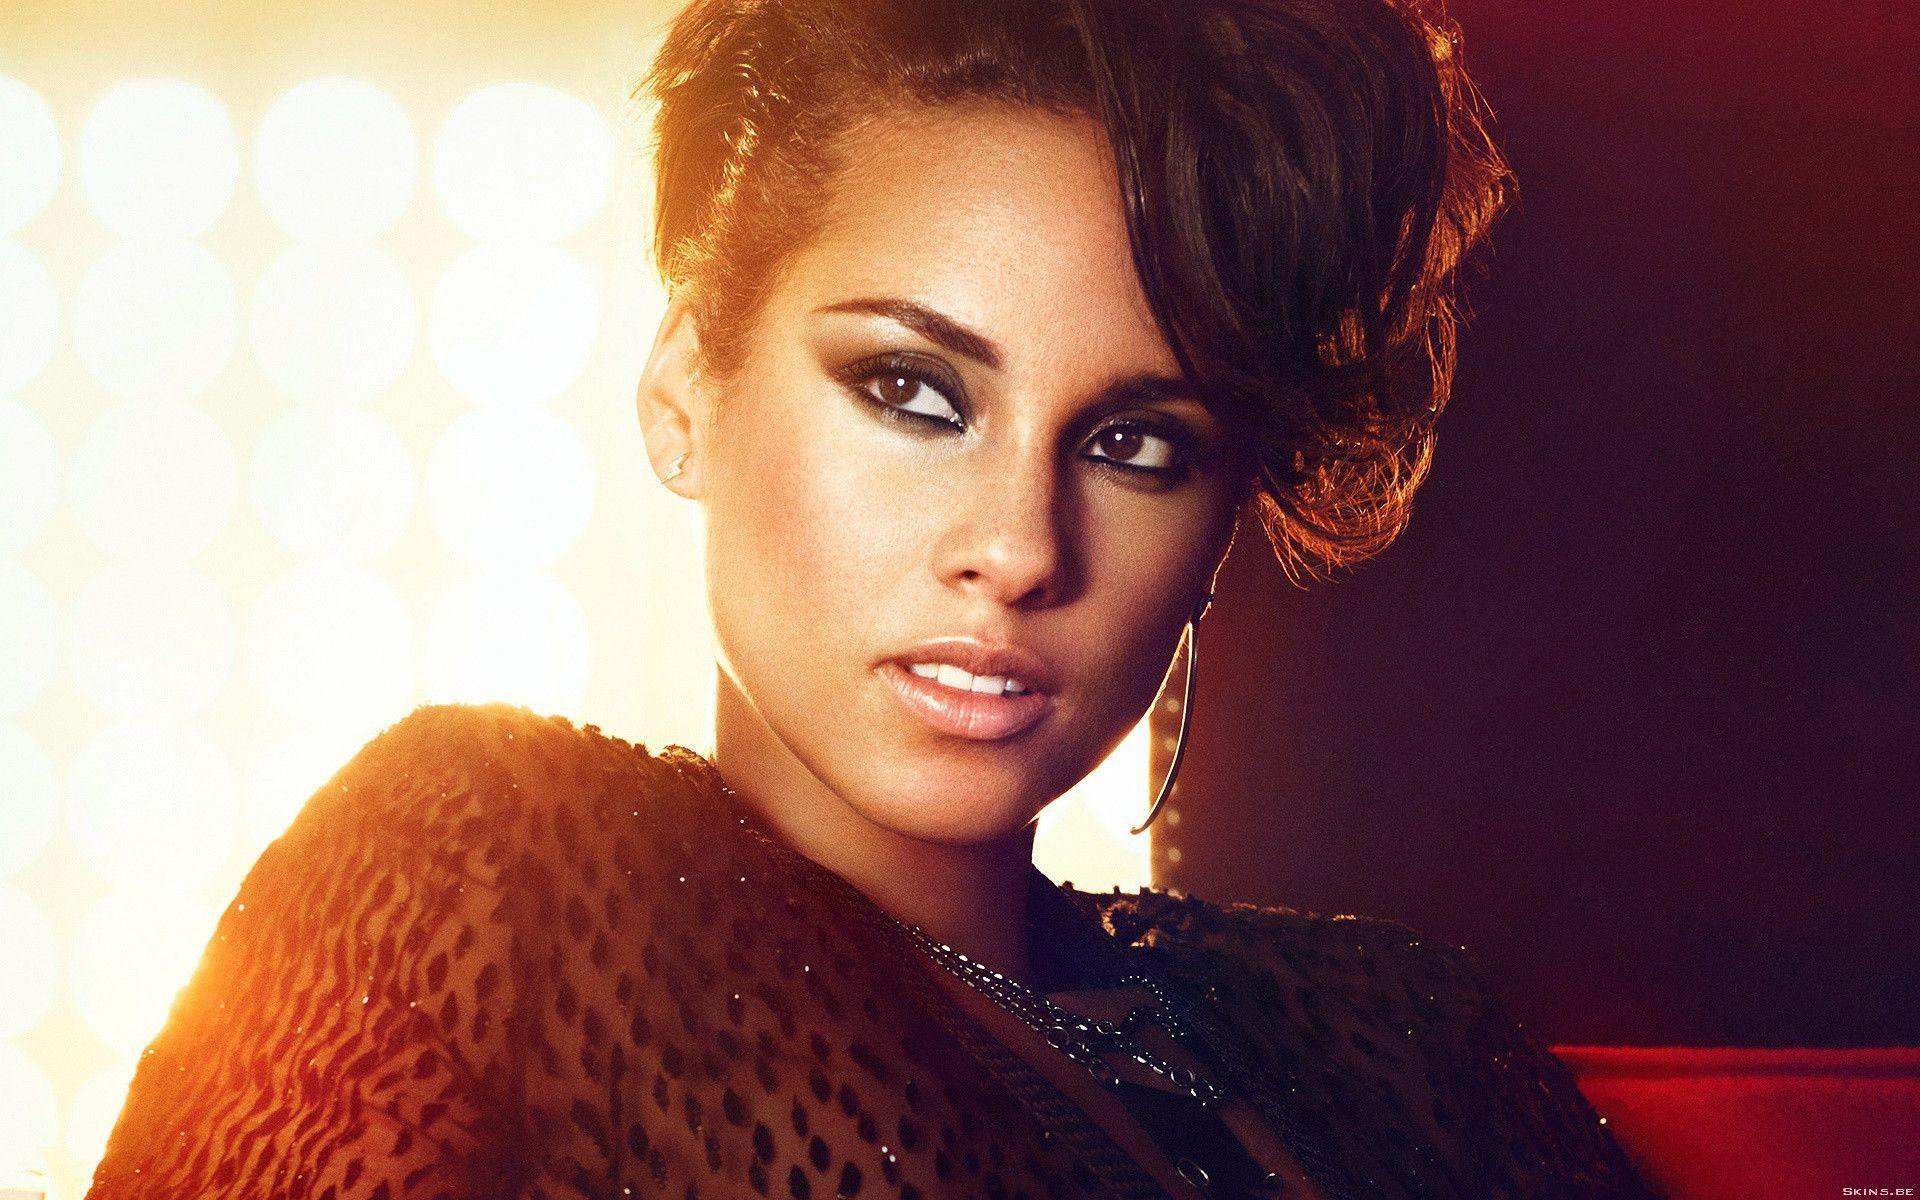 Alicia Keys Computer Wallpapers, Desktop Backgrounds 1920x1200 Id ...